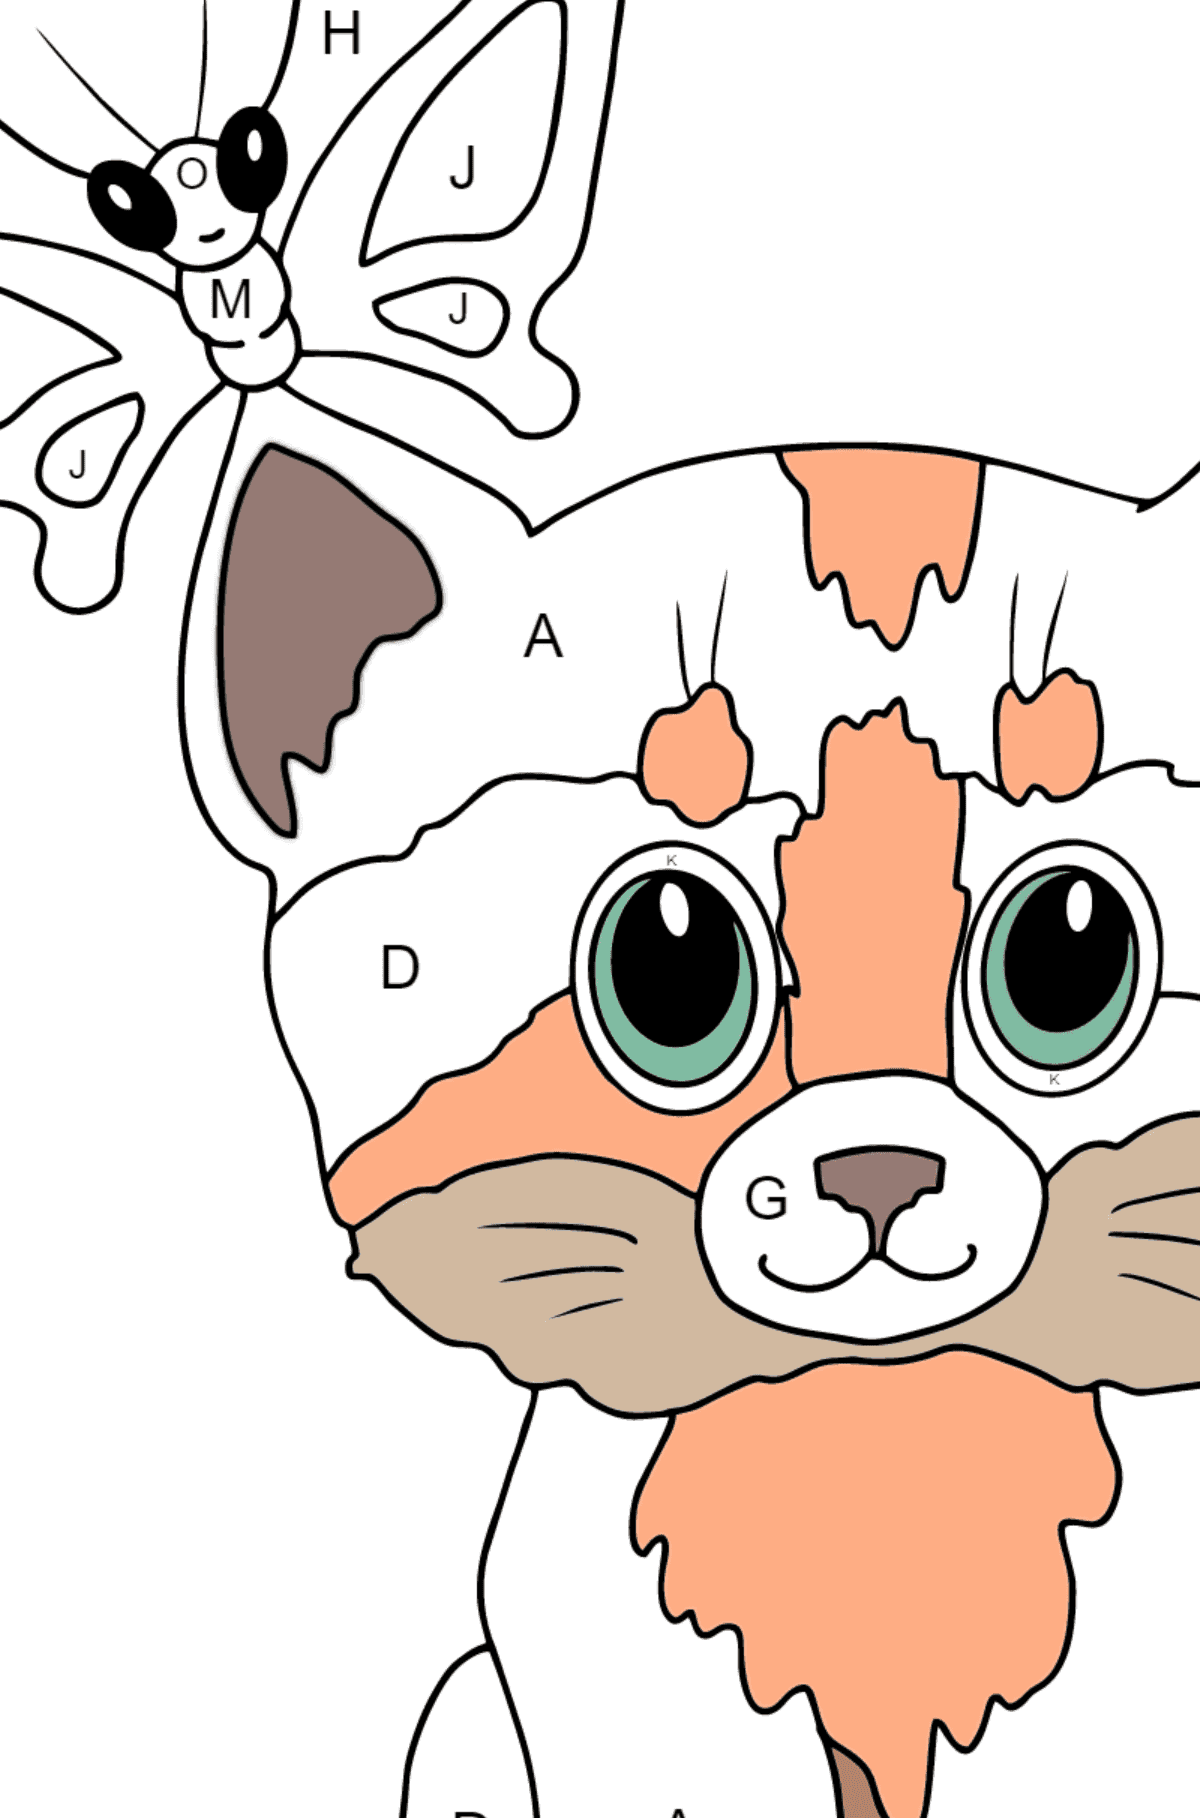 Coloring Page - A Cat with a Butterfly on Its Ear - Coloring by Letters for Kids